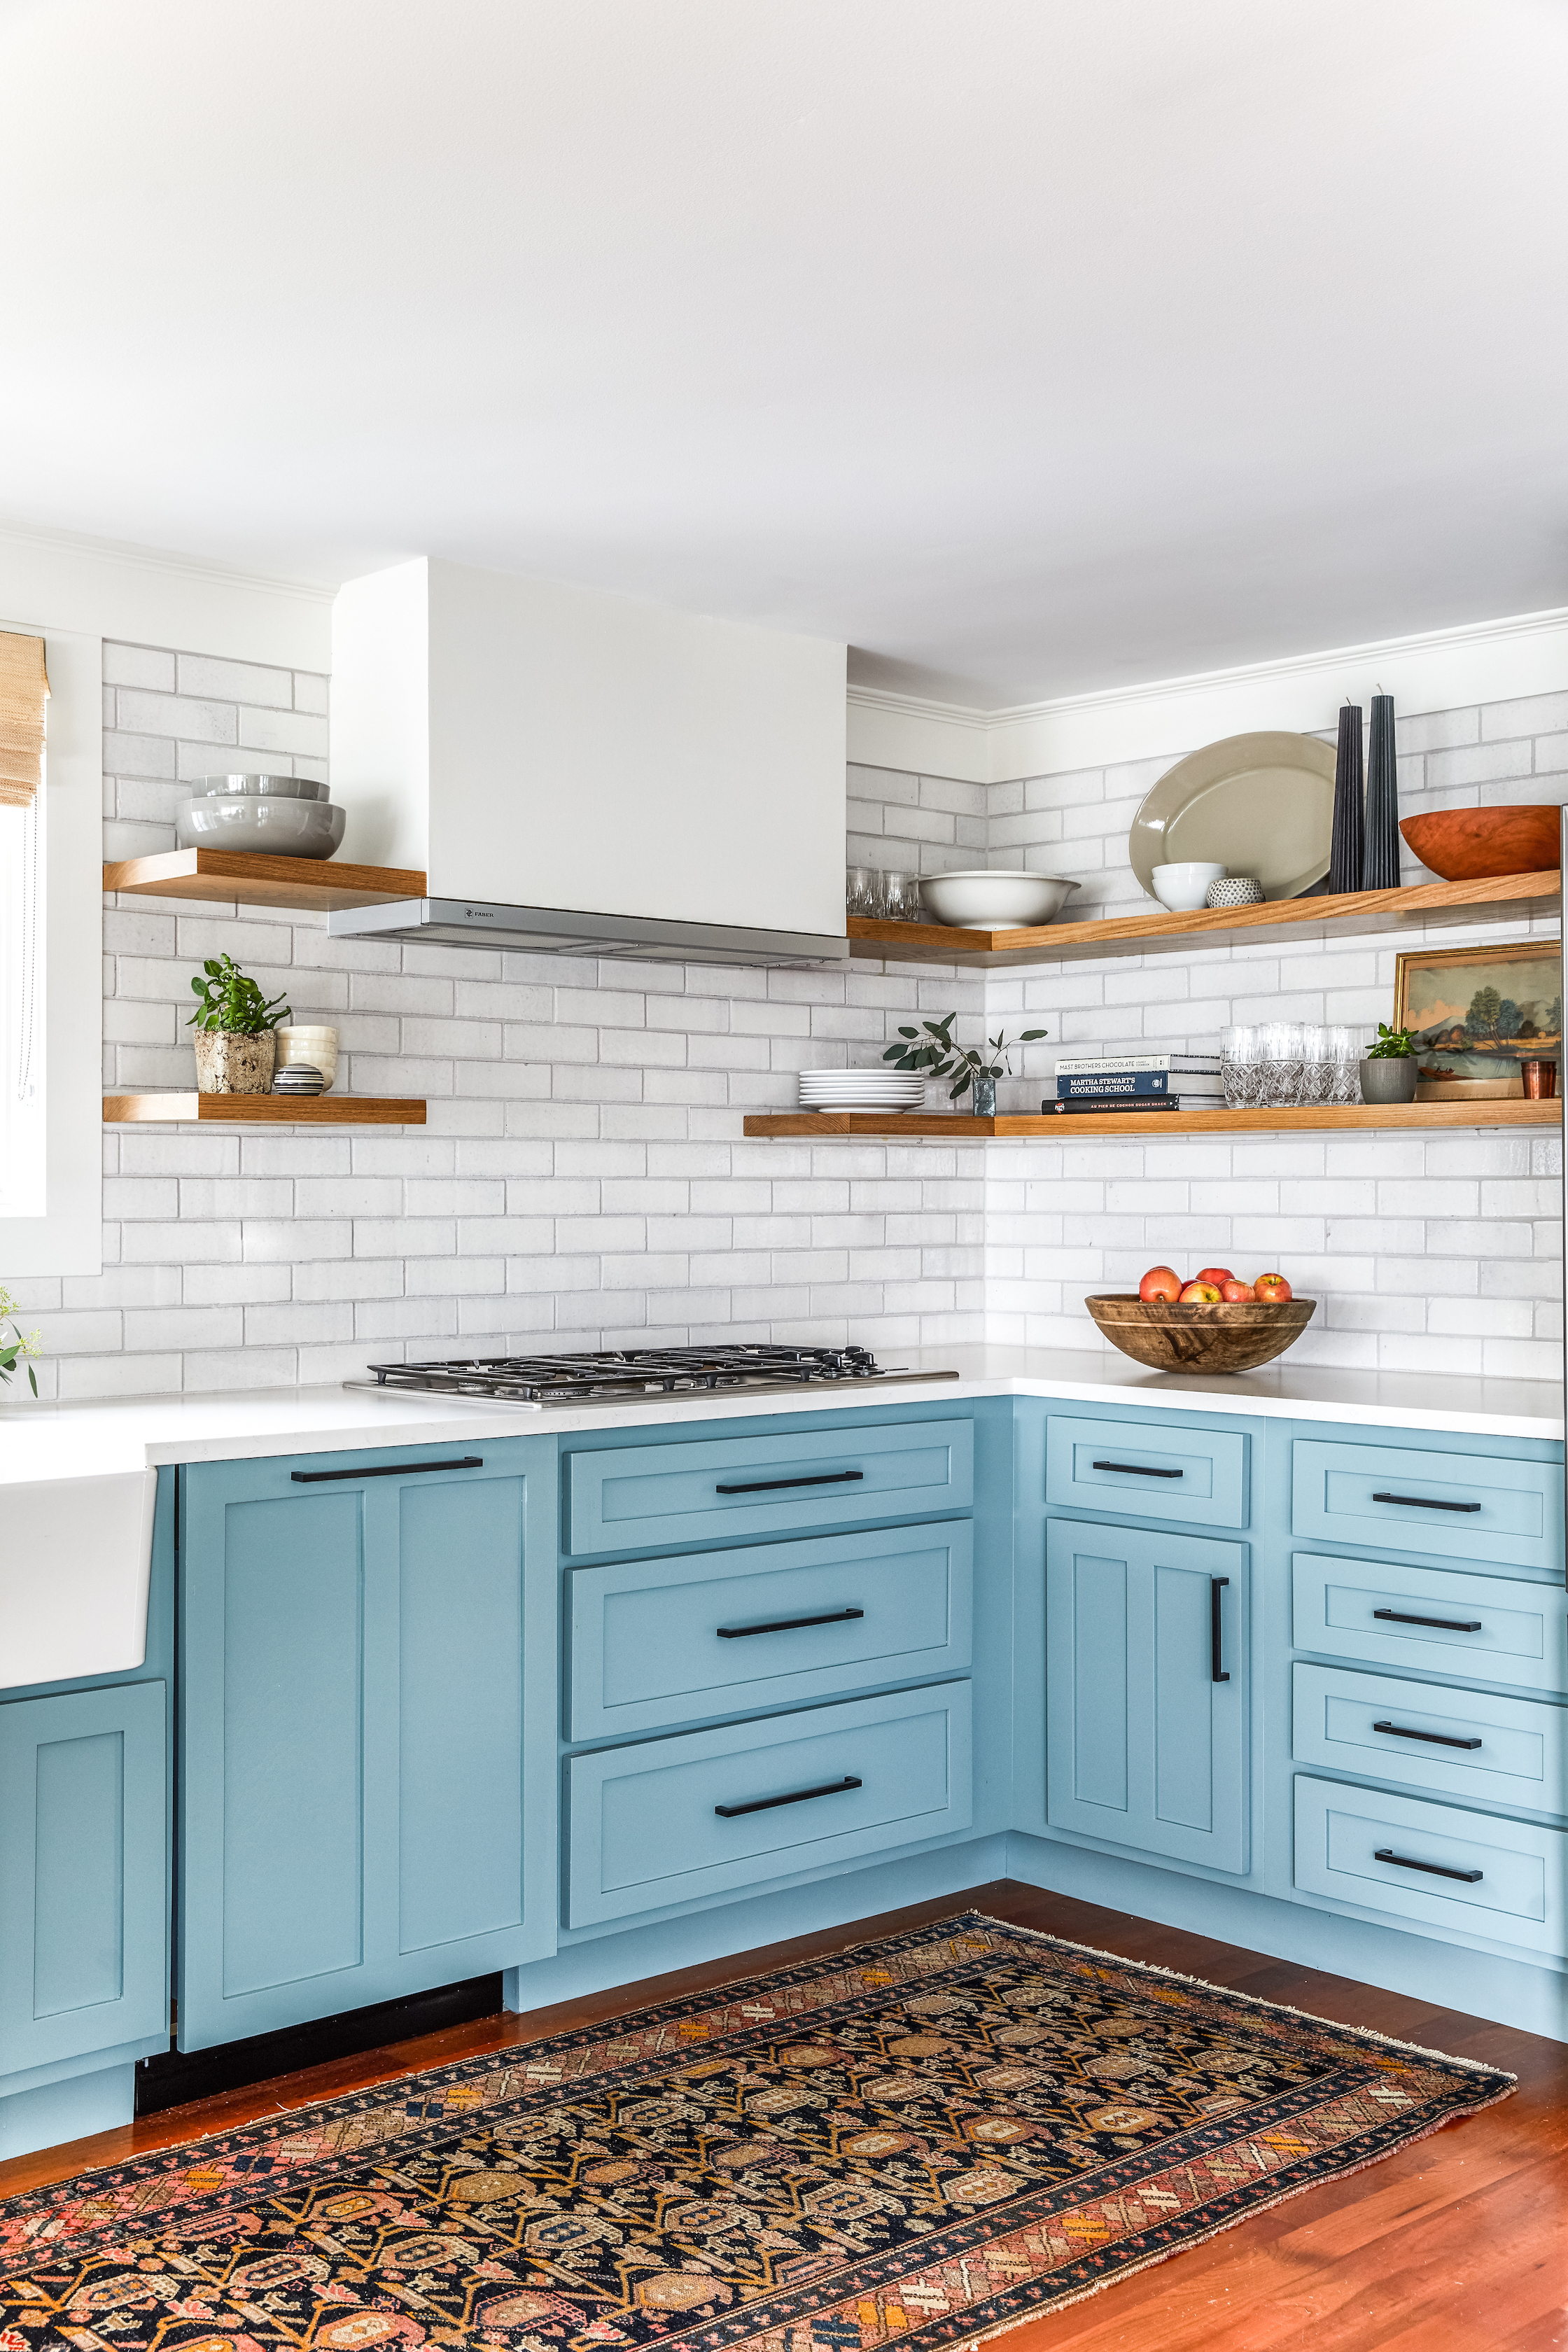 2018_q1_img_residential_hi_res_RIGHTS_erin_little_photo_heidi_lachapelle_design_kitchen_backsplash_maine_brick_olympic_glazed_edge_trim_FC222895_1_181118_121353.jpg?mtime=20181118121353#asset:426251